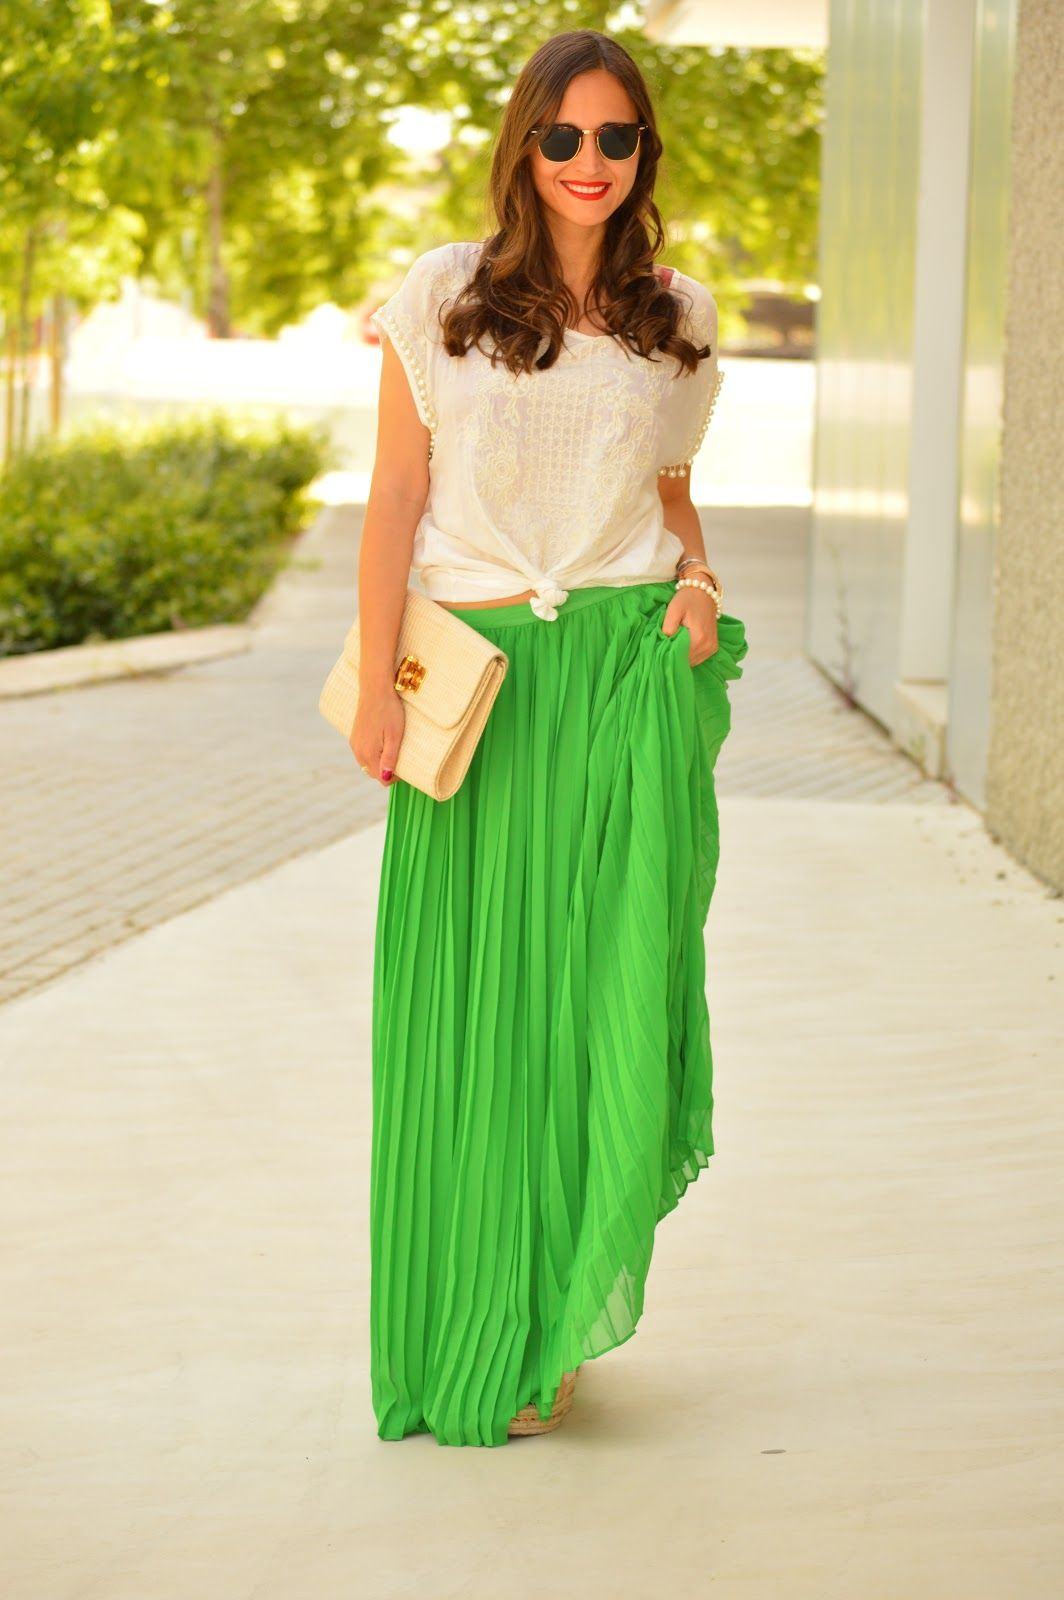 1000 MANERAS DE VESTIR: Fancy skirt. White floral embroidery pearl top+green pleated maxi skirt+camel and gold wedges+ivory clutch+sunglasses. Summer Casual Outfit 2017